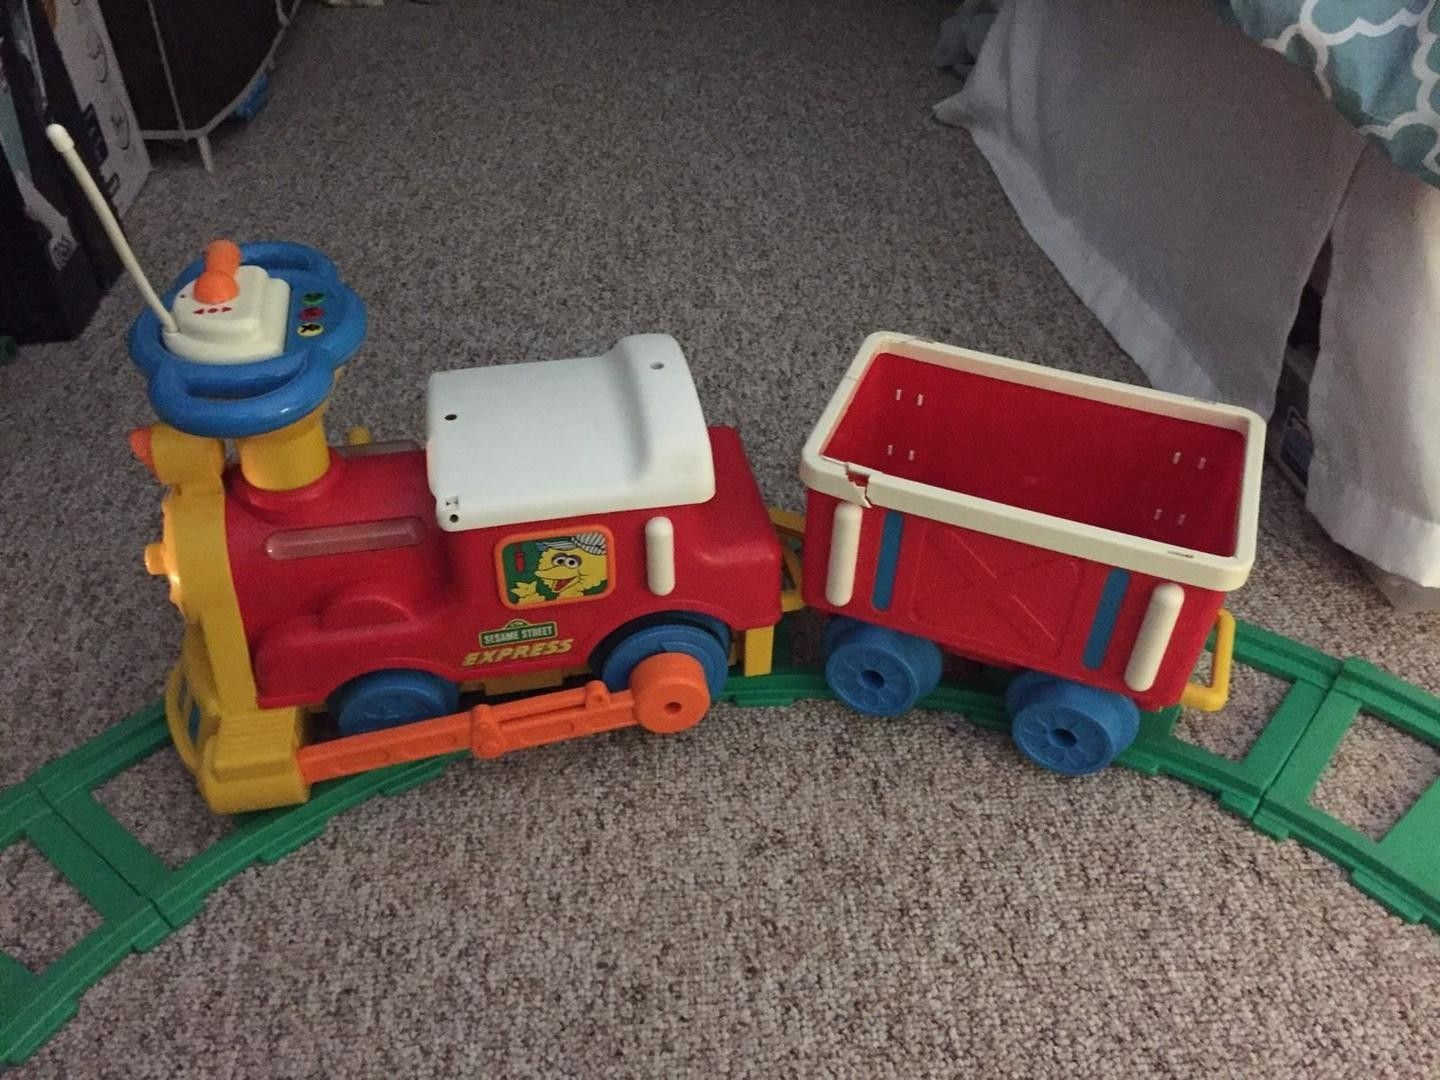 Toy Name Radio Control Ride On Sesame Street Express Train Chicco Musical Box Rabbit Blue With Gift Manufacturer Tyco Appearances Language Nursery 1997 2003 Baby Shakespeare 1999